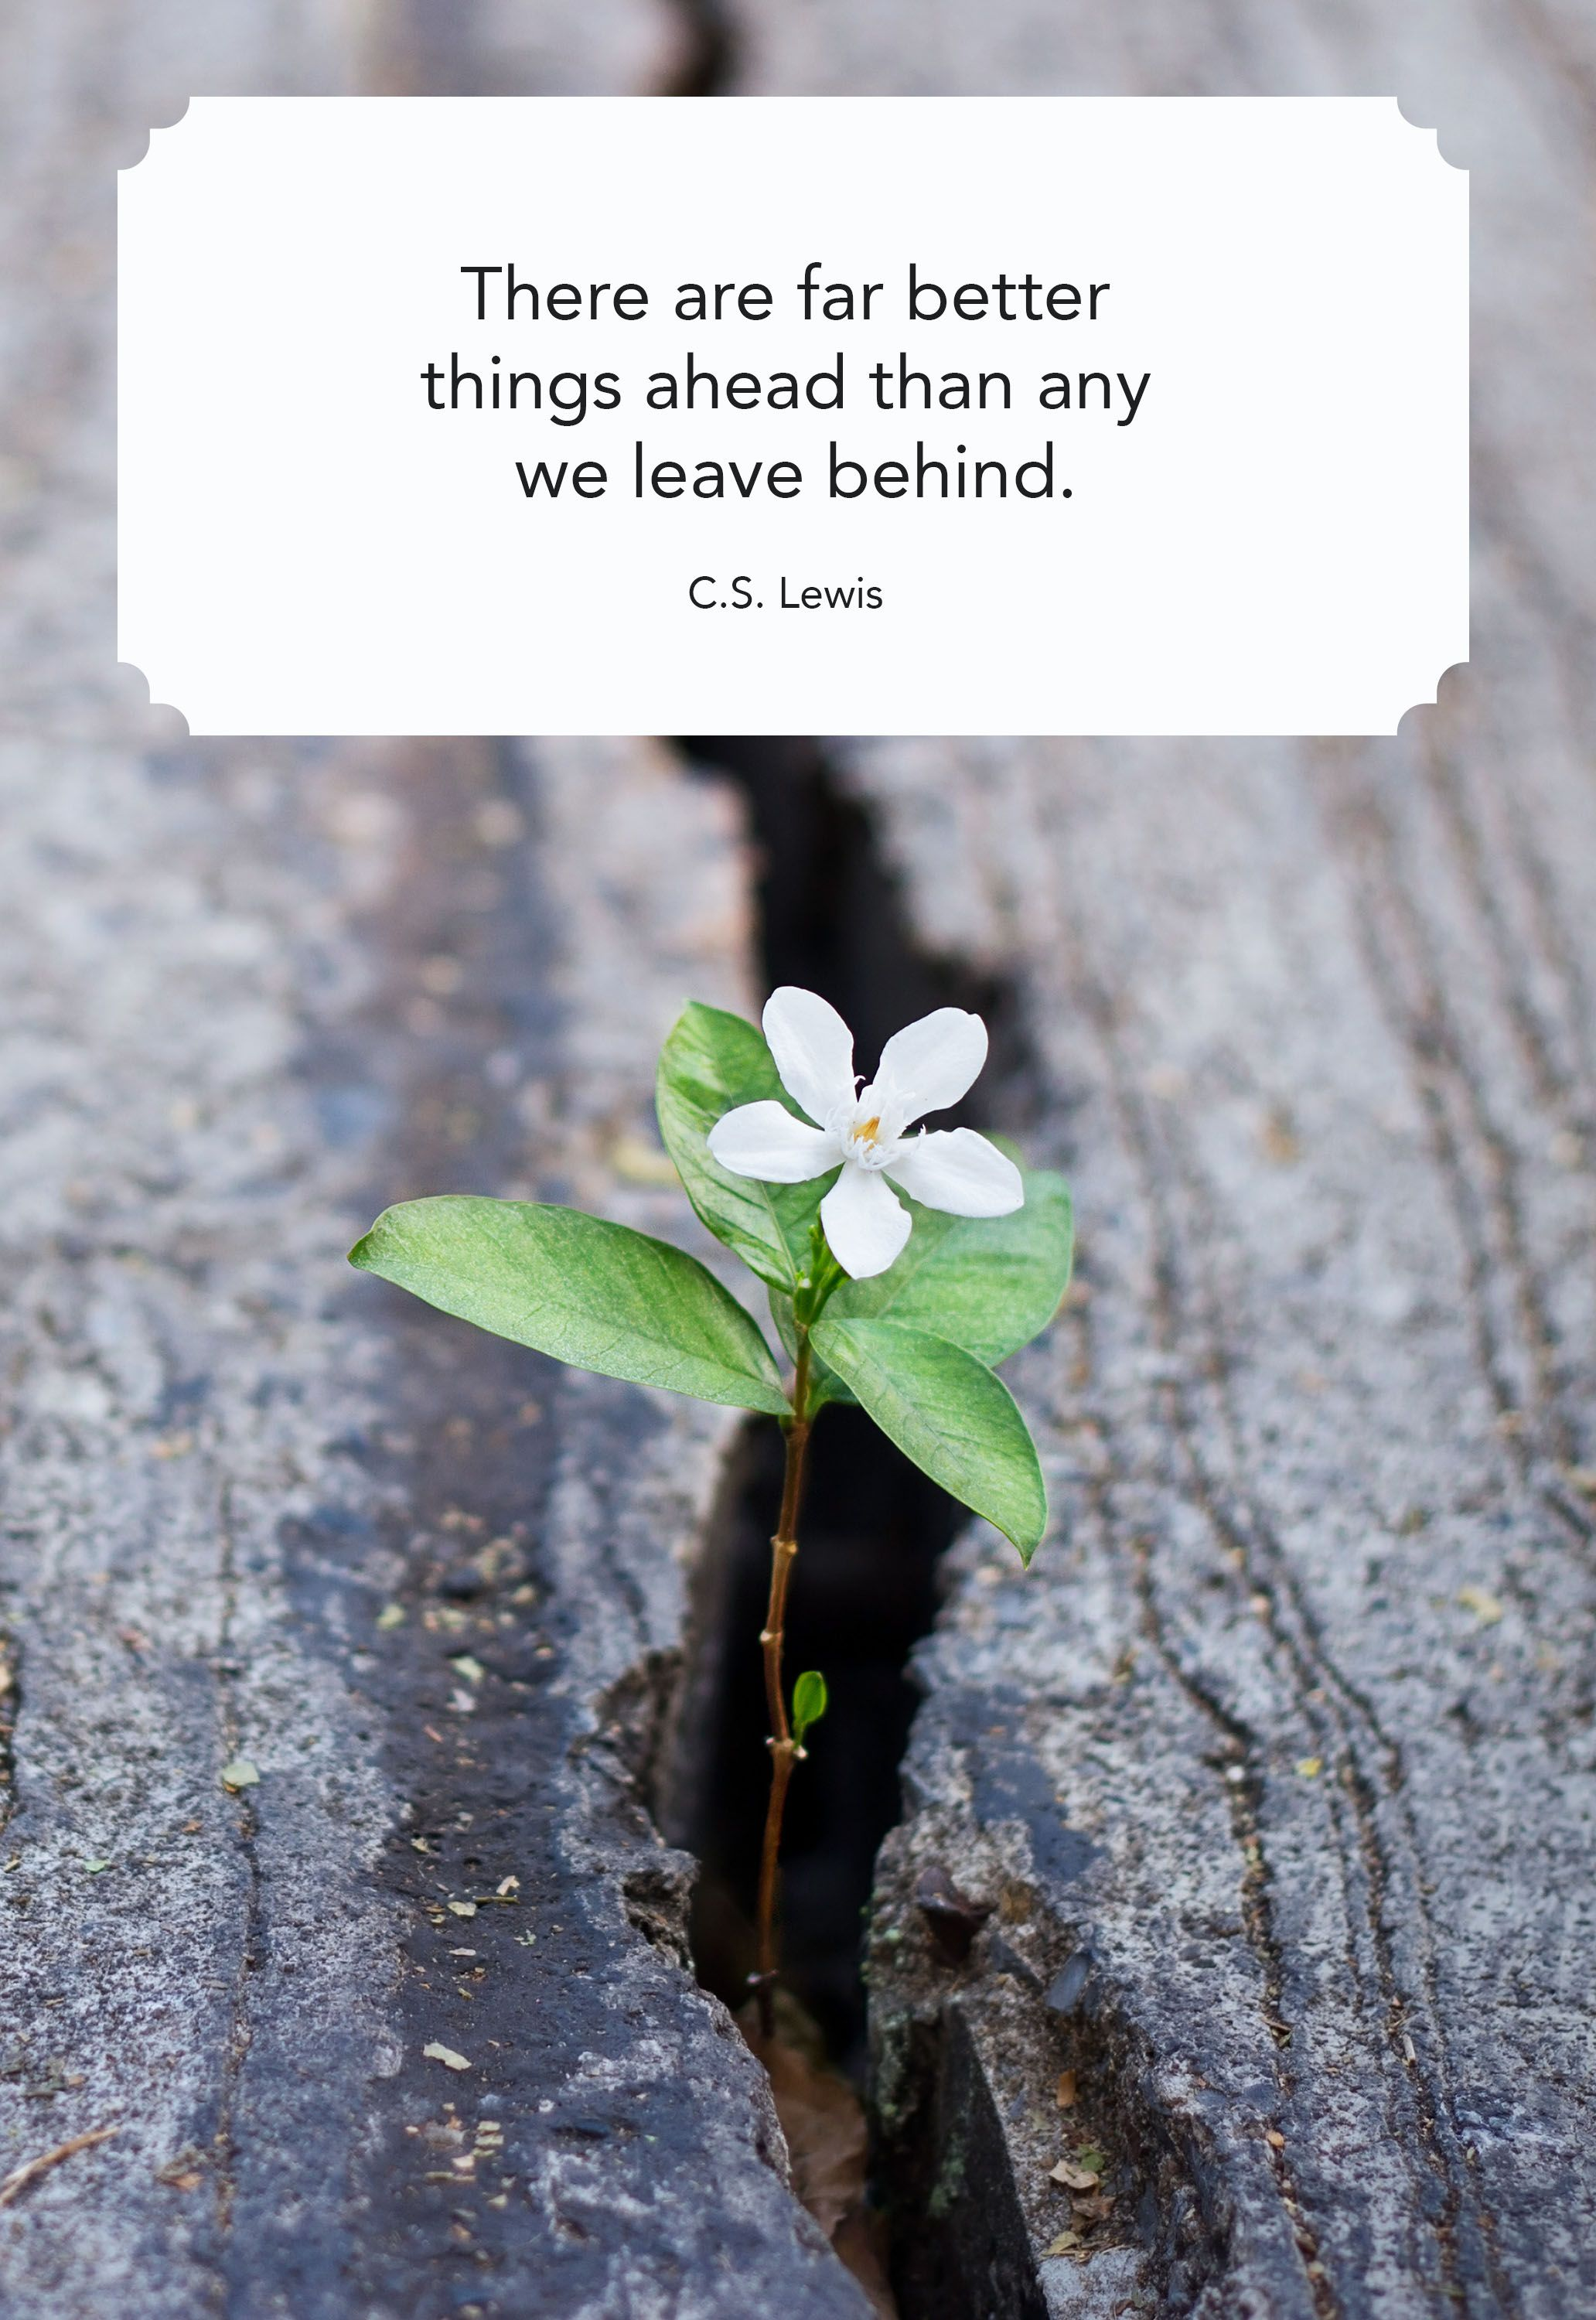 20 Best Quotes About Change   Inspiring Sayings to Navigate Life ...